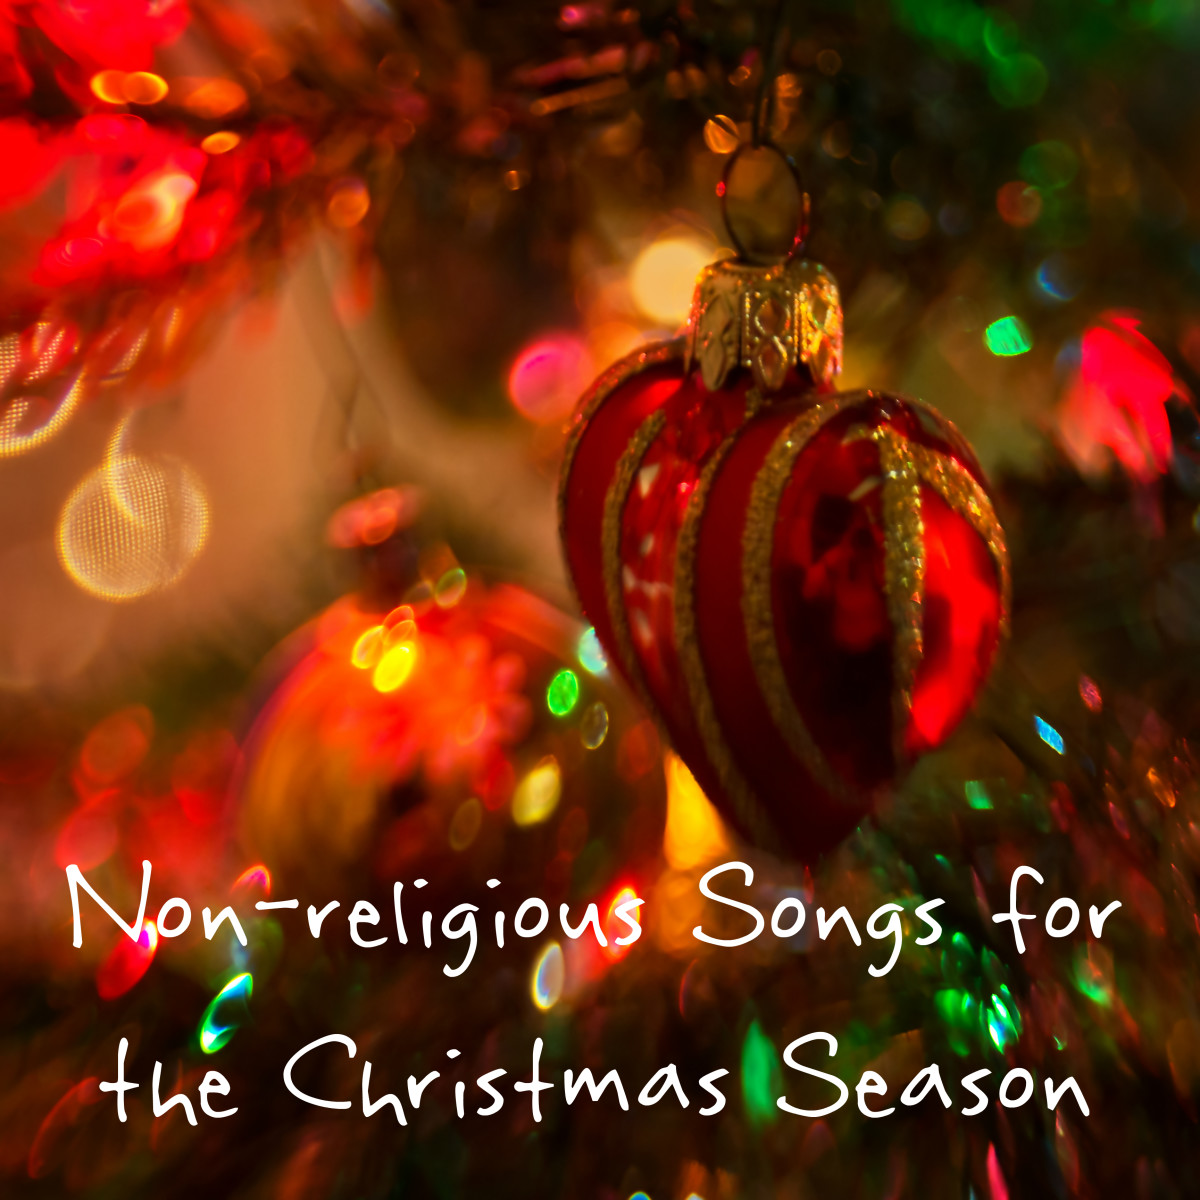 124 Non-Religious Christmas Songs for Your Holiday Playlist